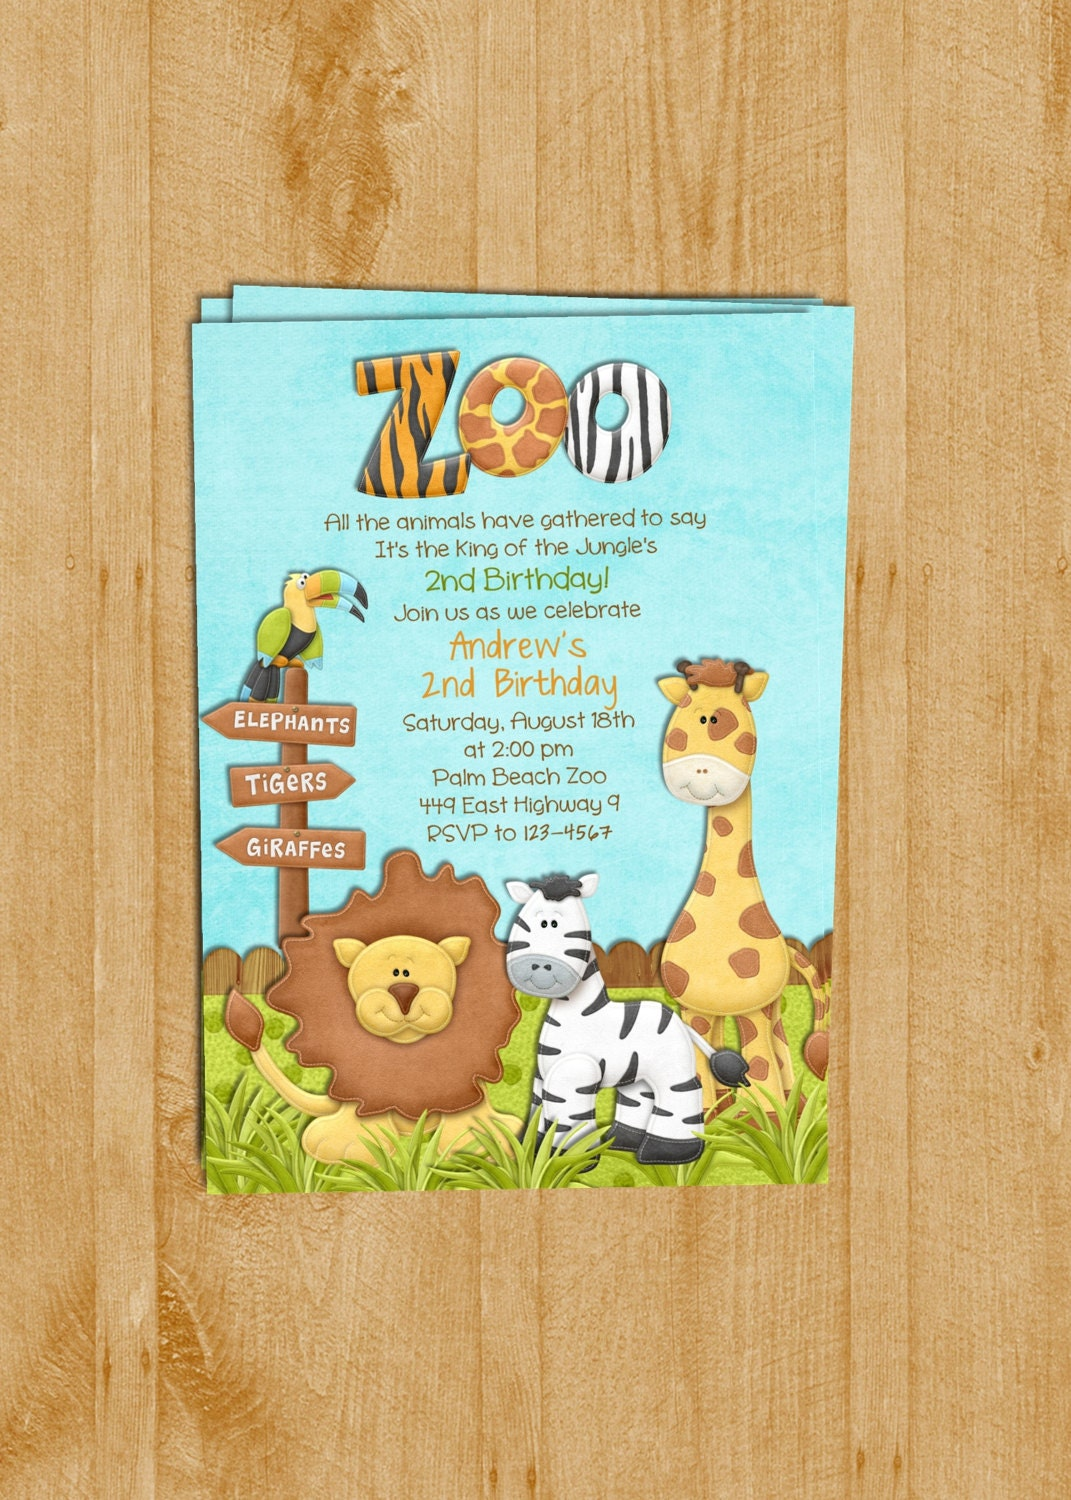 Animal themed birthday party invitations akbaeenw animal themed birthday party invitations stopboris Image collections